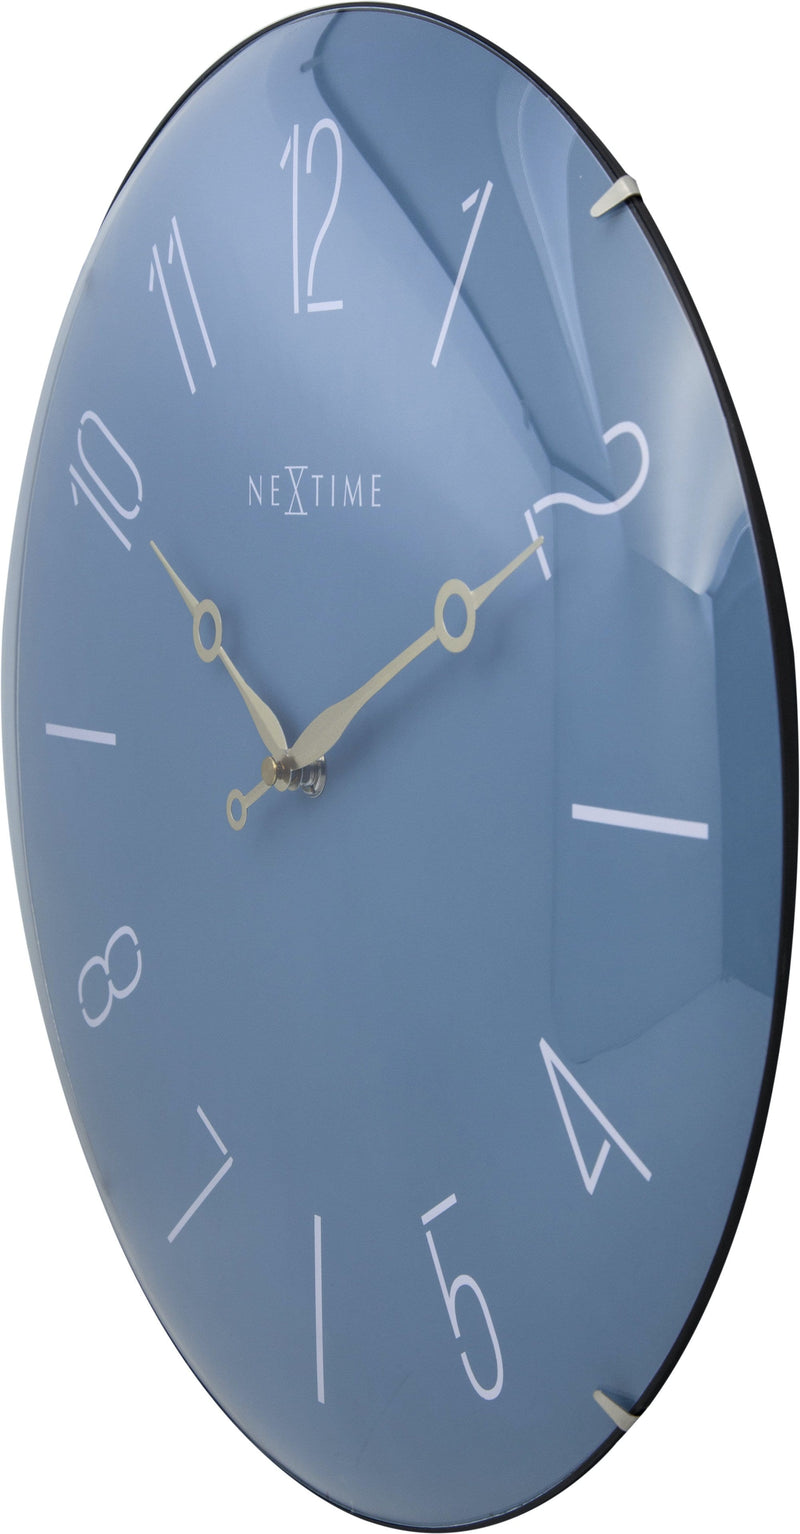 rightside 3158BL,Trendy Dome,NeXtime,Glass,Blue,